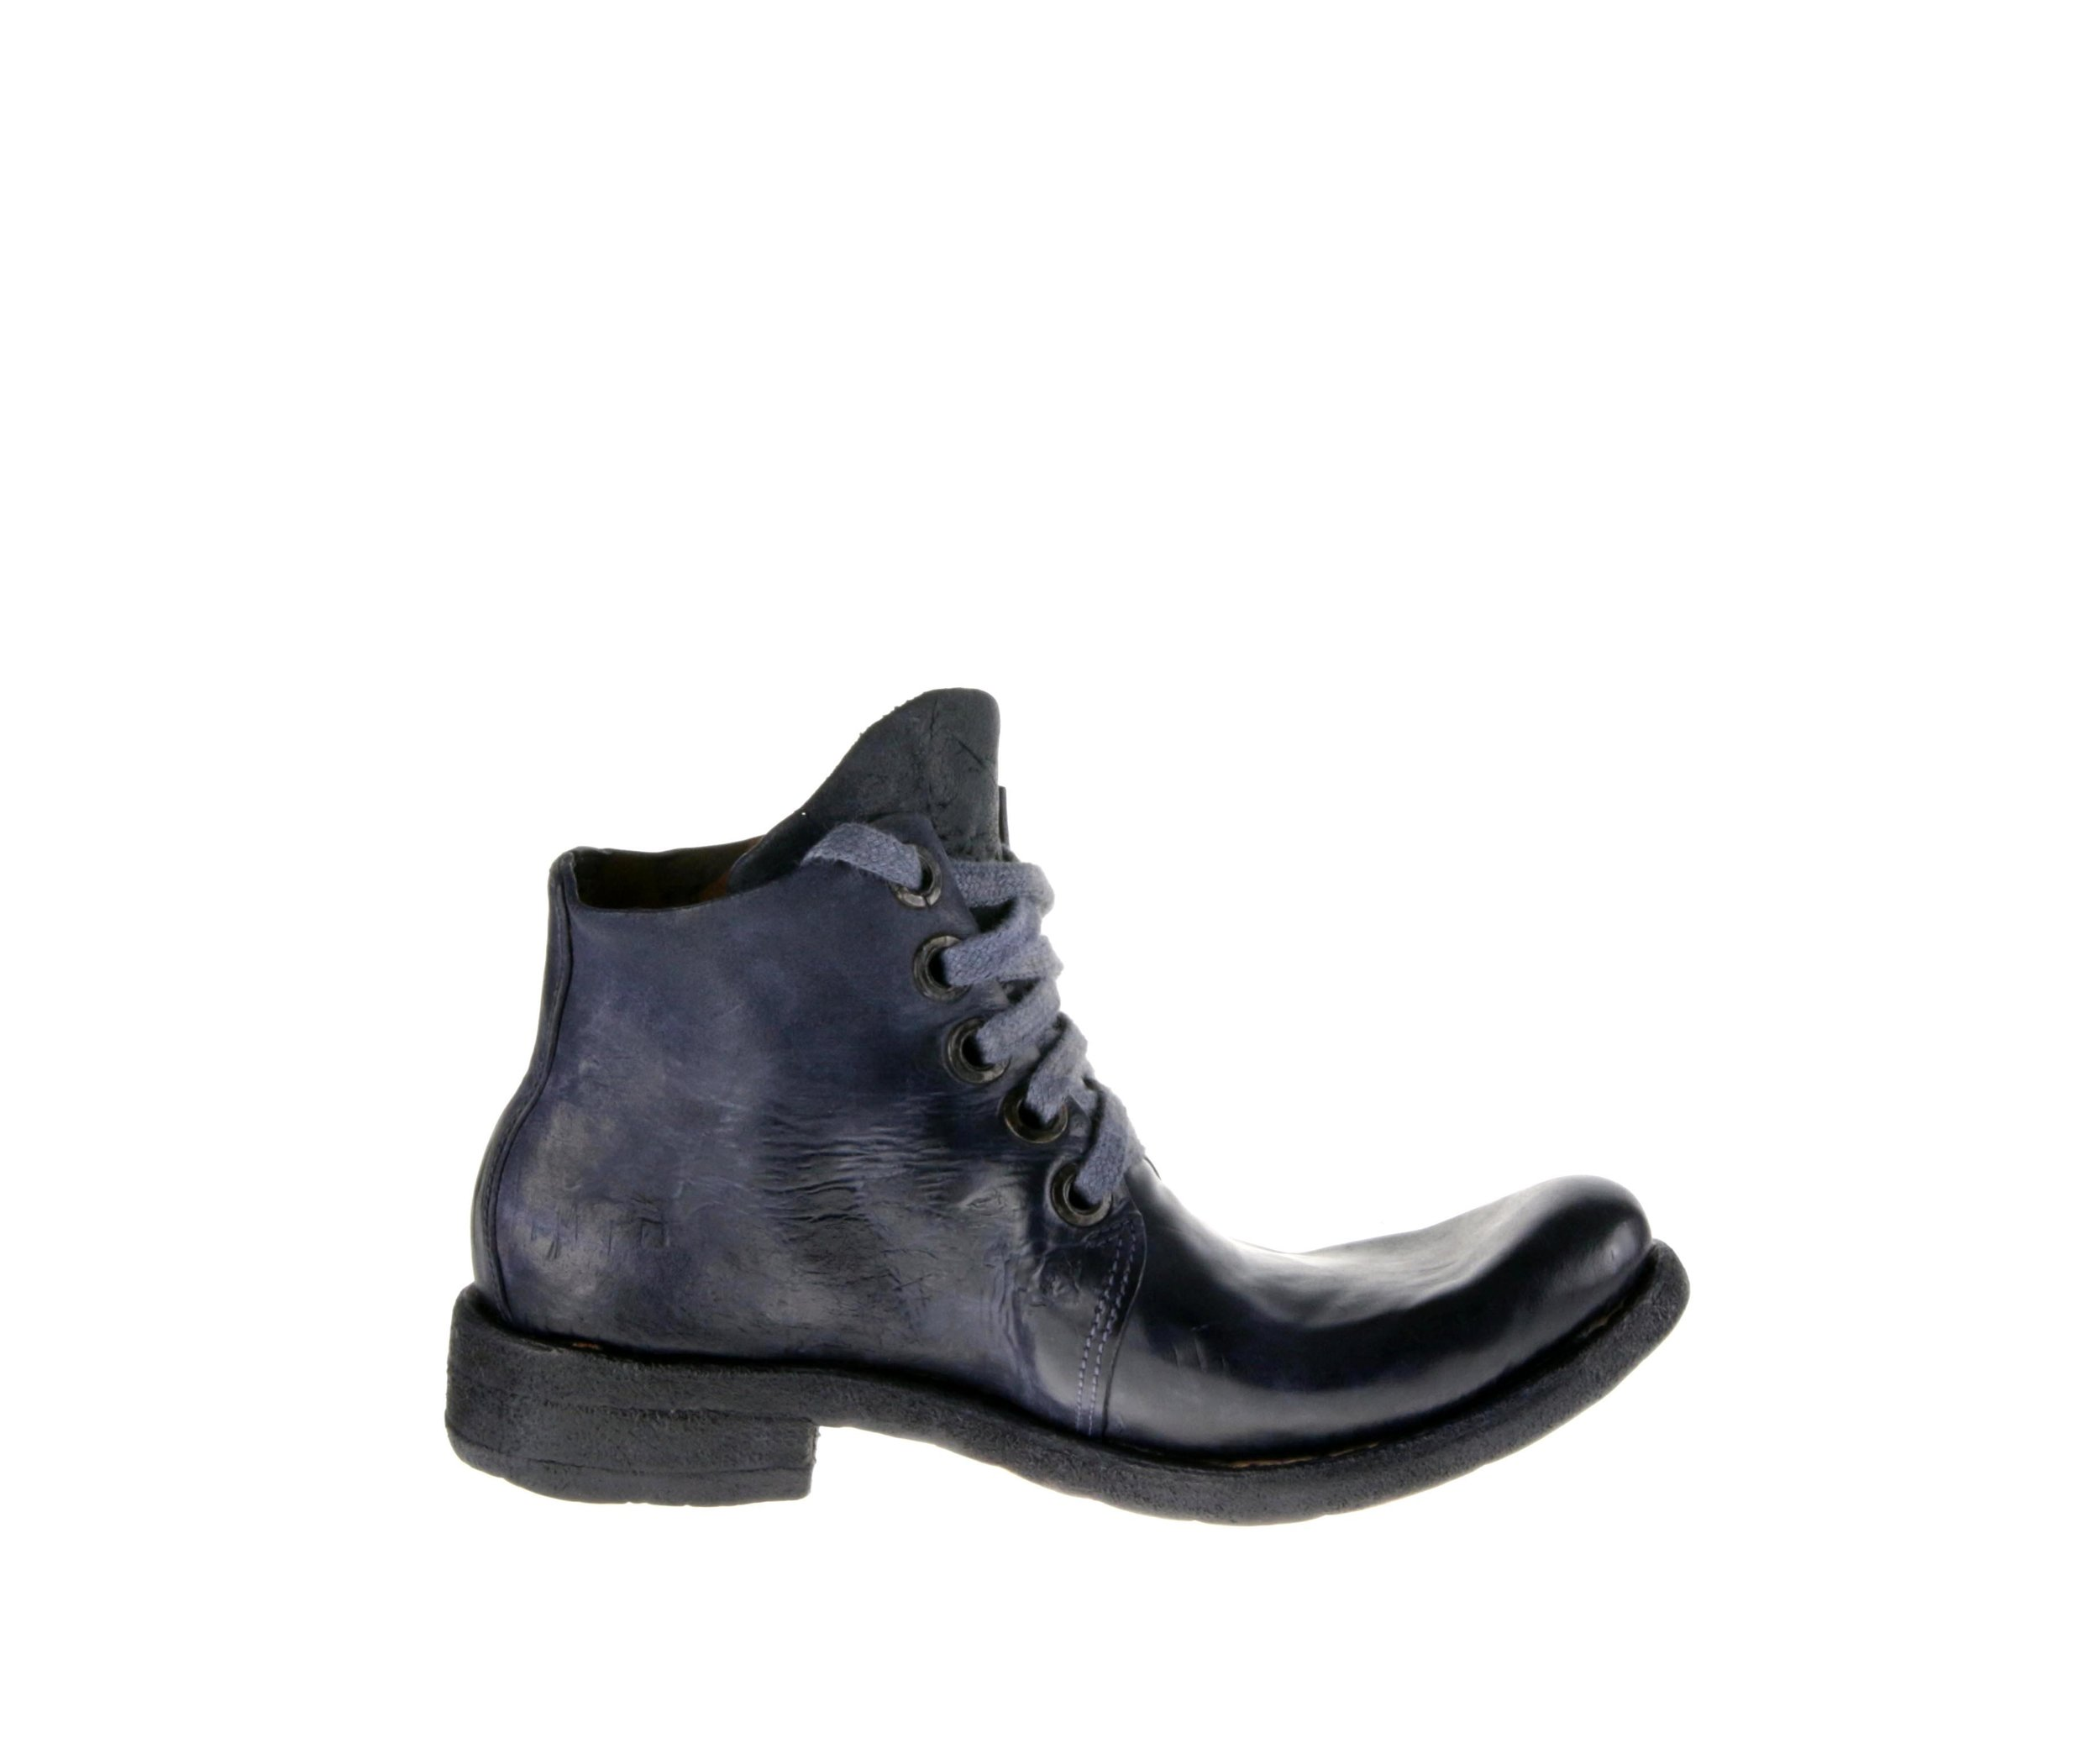 5Hole Boot Blue Cordovan Inside.jpg